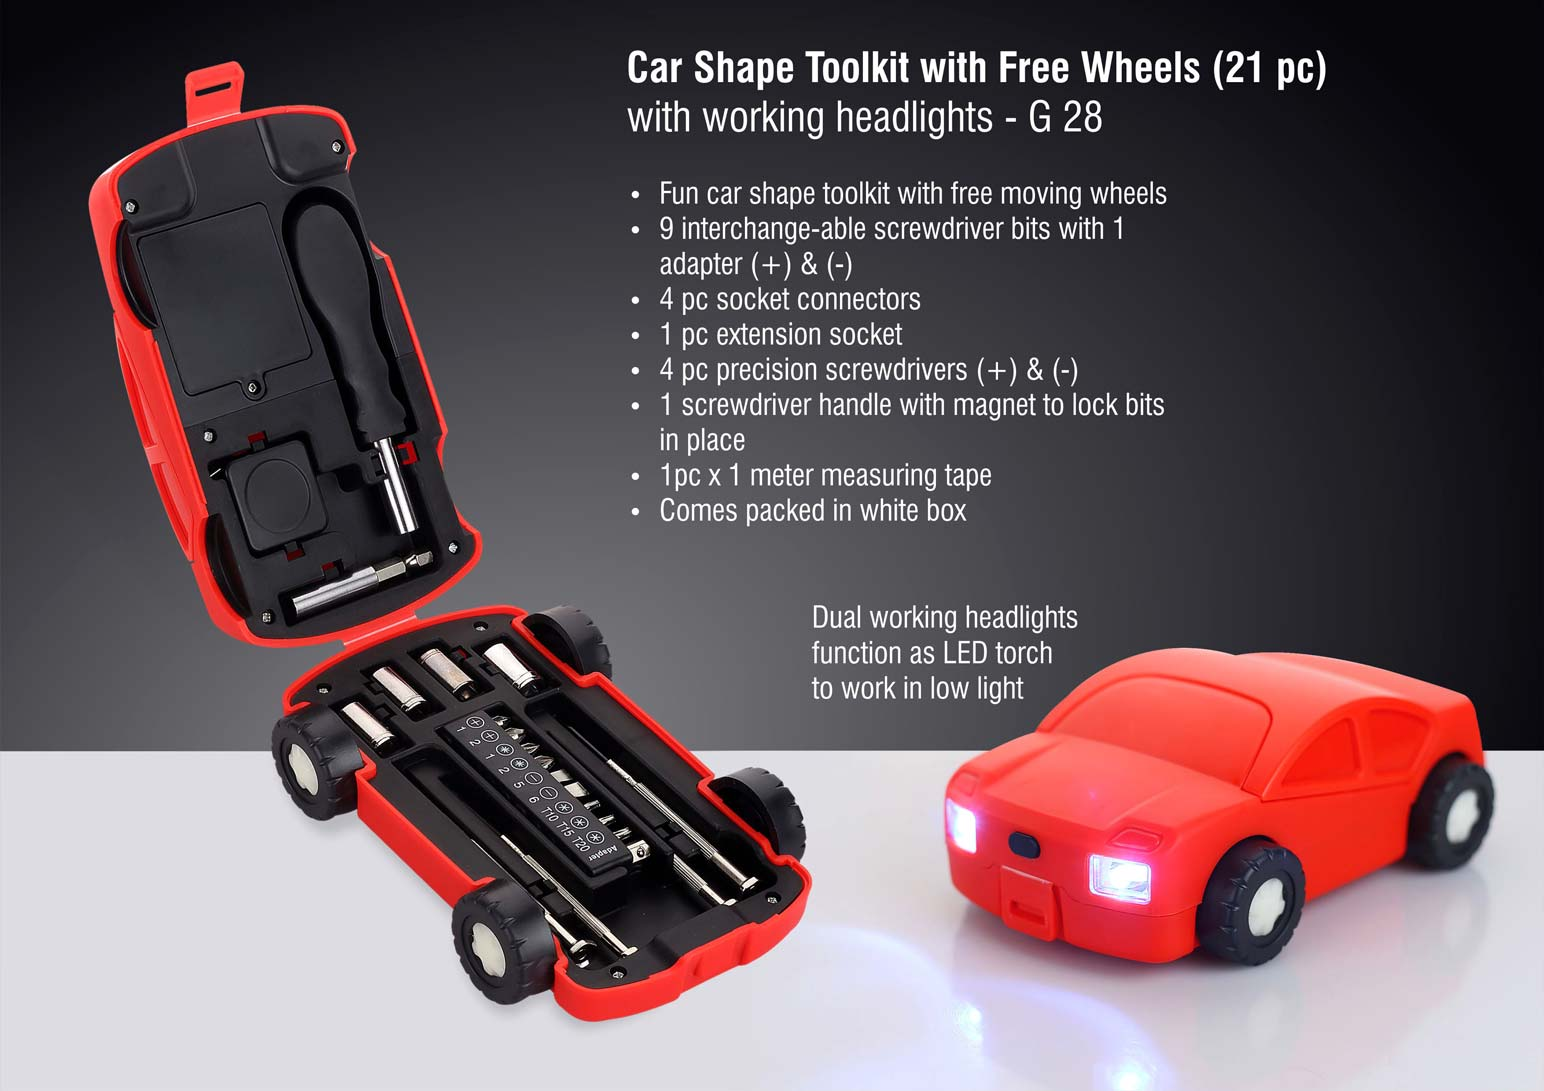 G28 - Car shape toolkit with free wheels (21 pc) | with working headlights